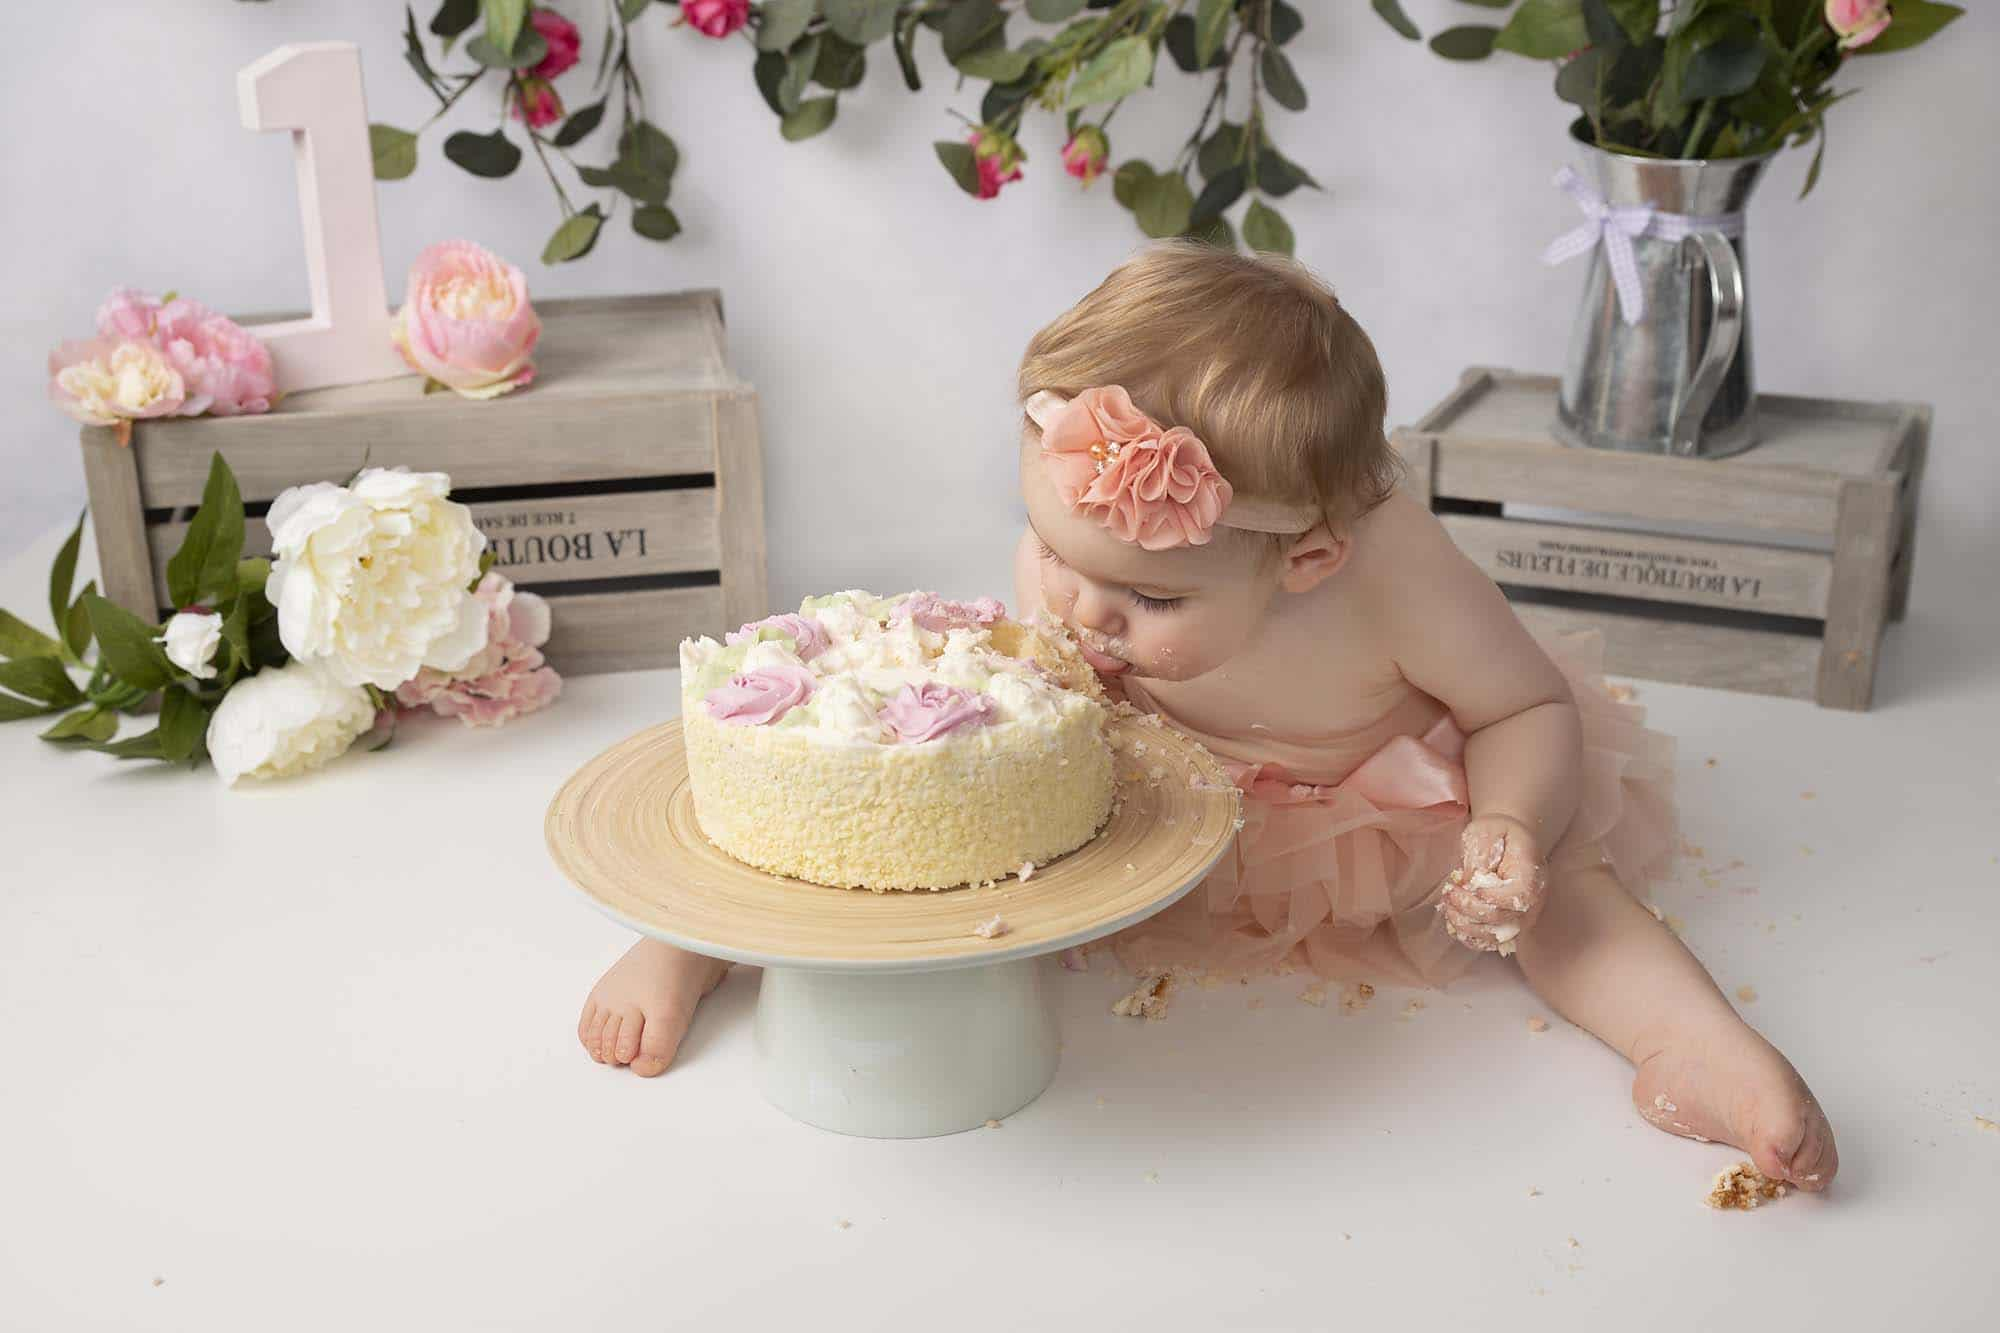 One year old little girl eating a cake photographed by cake smash photography Manchester